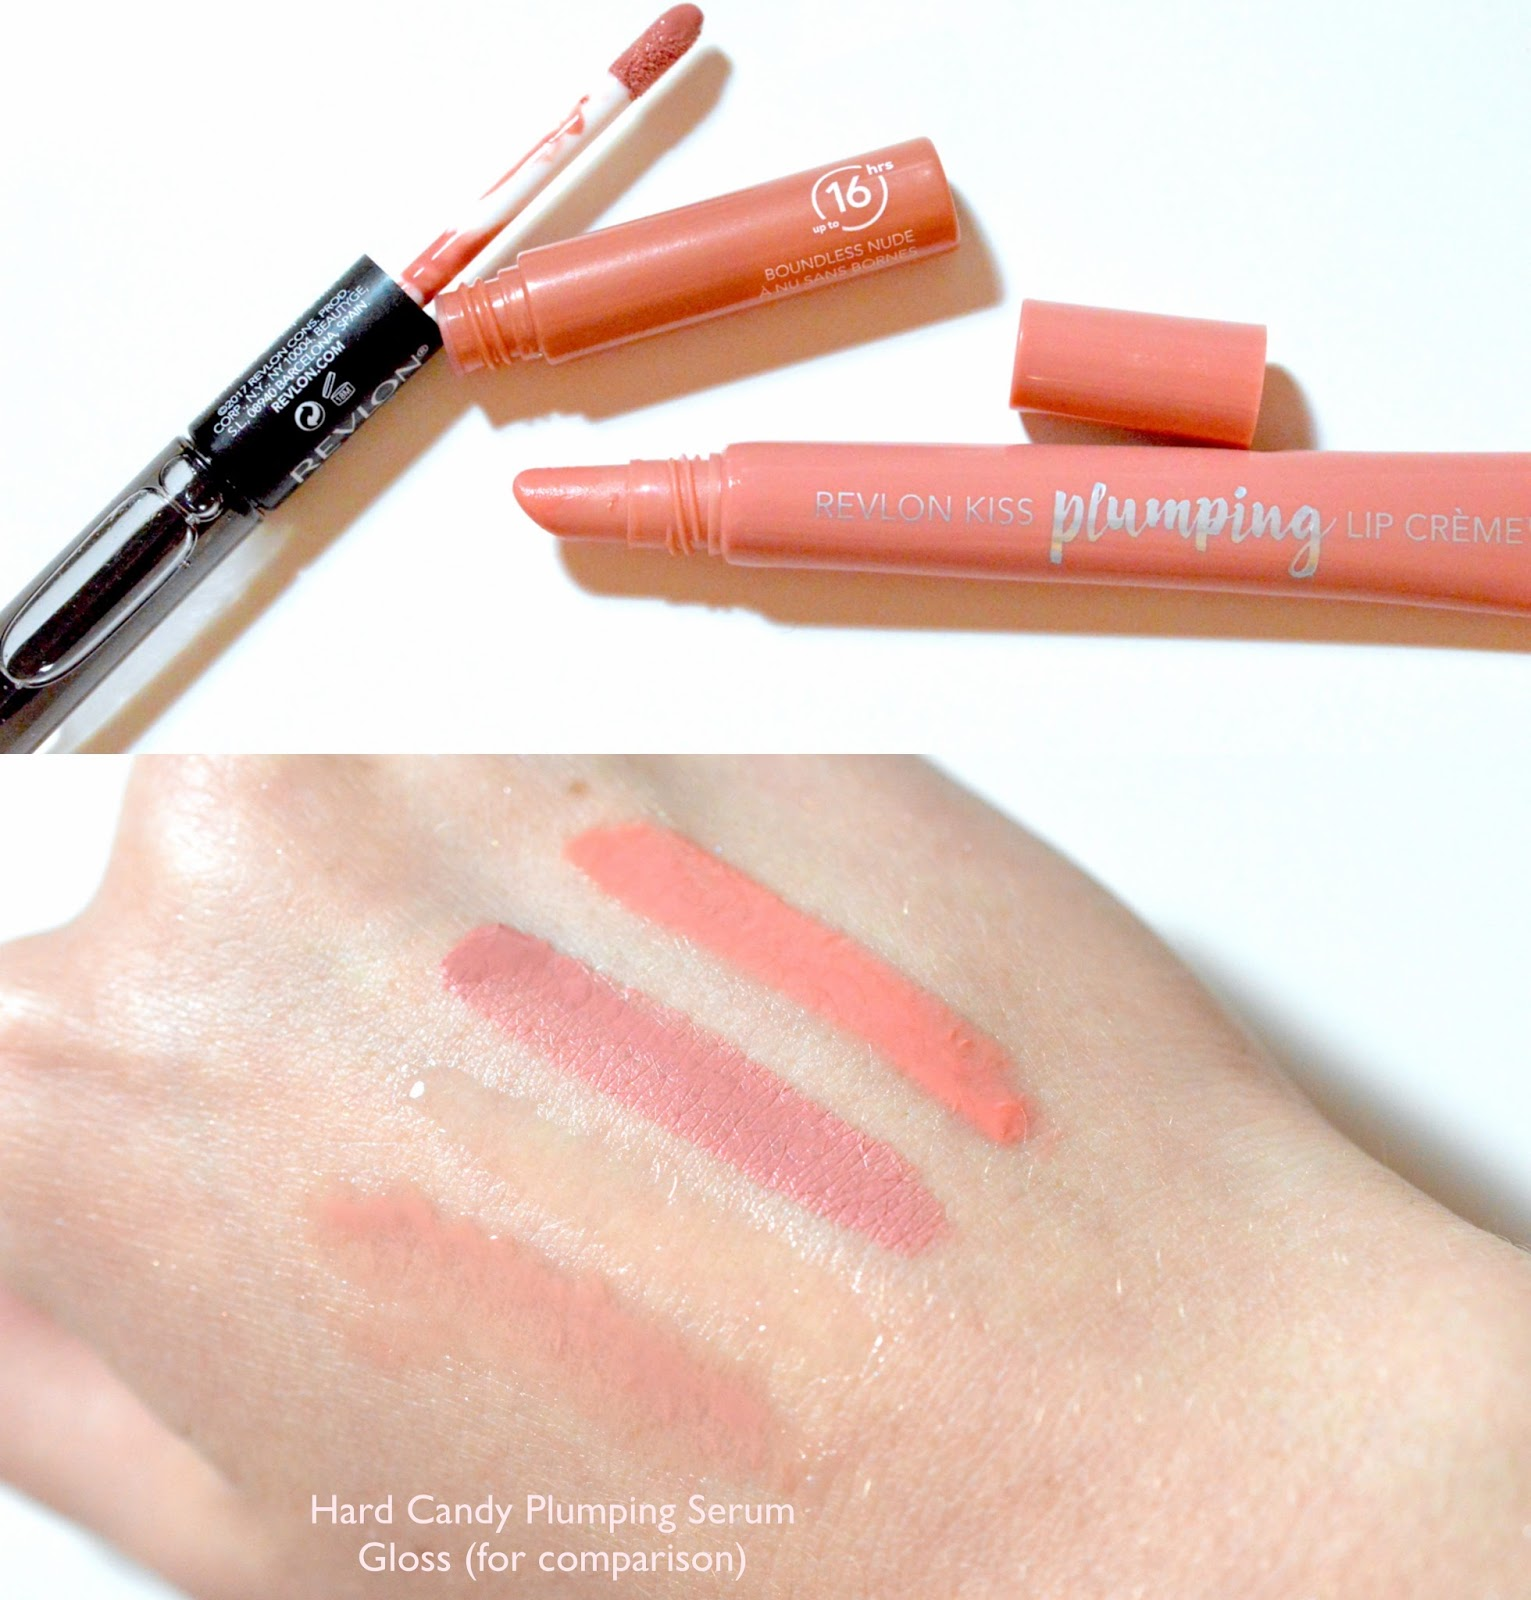 Revlon Kiss Plumping Lip Crème Review